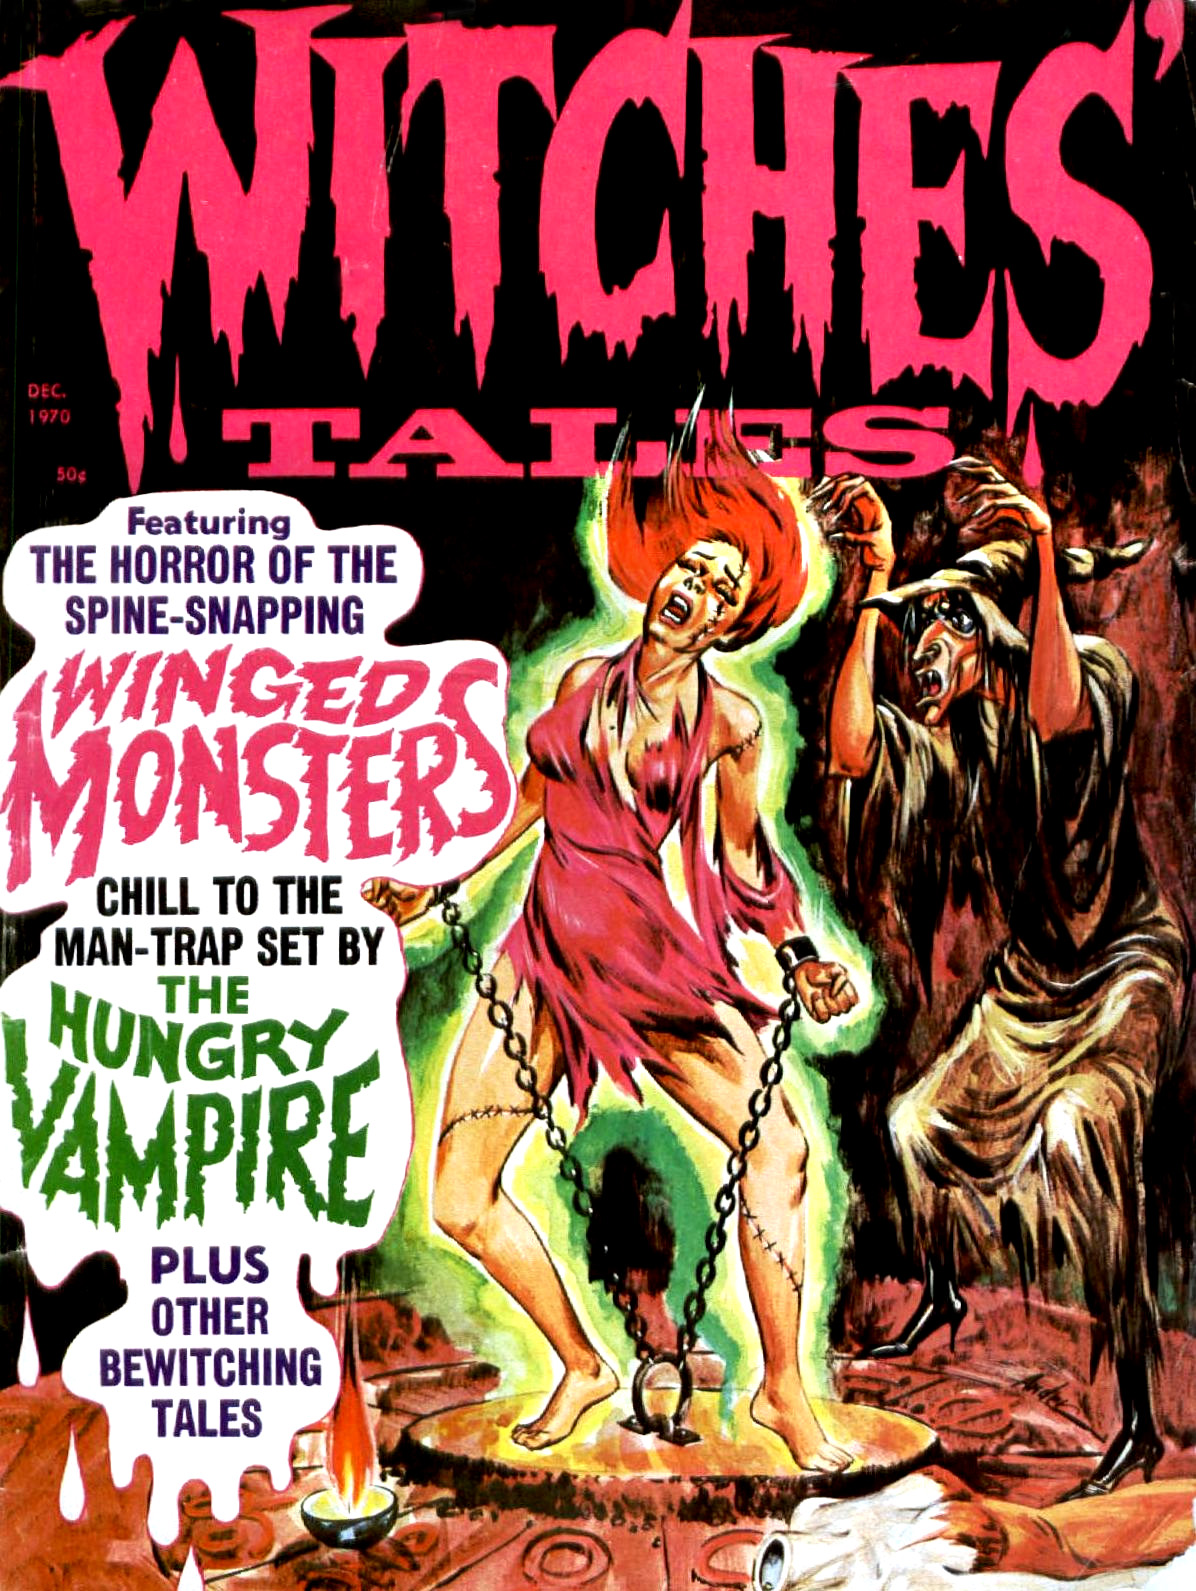 Witches' Tales Vol. 2 #6 (Eerie Publications 1970)